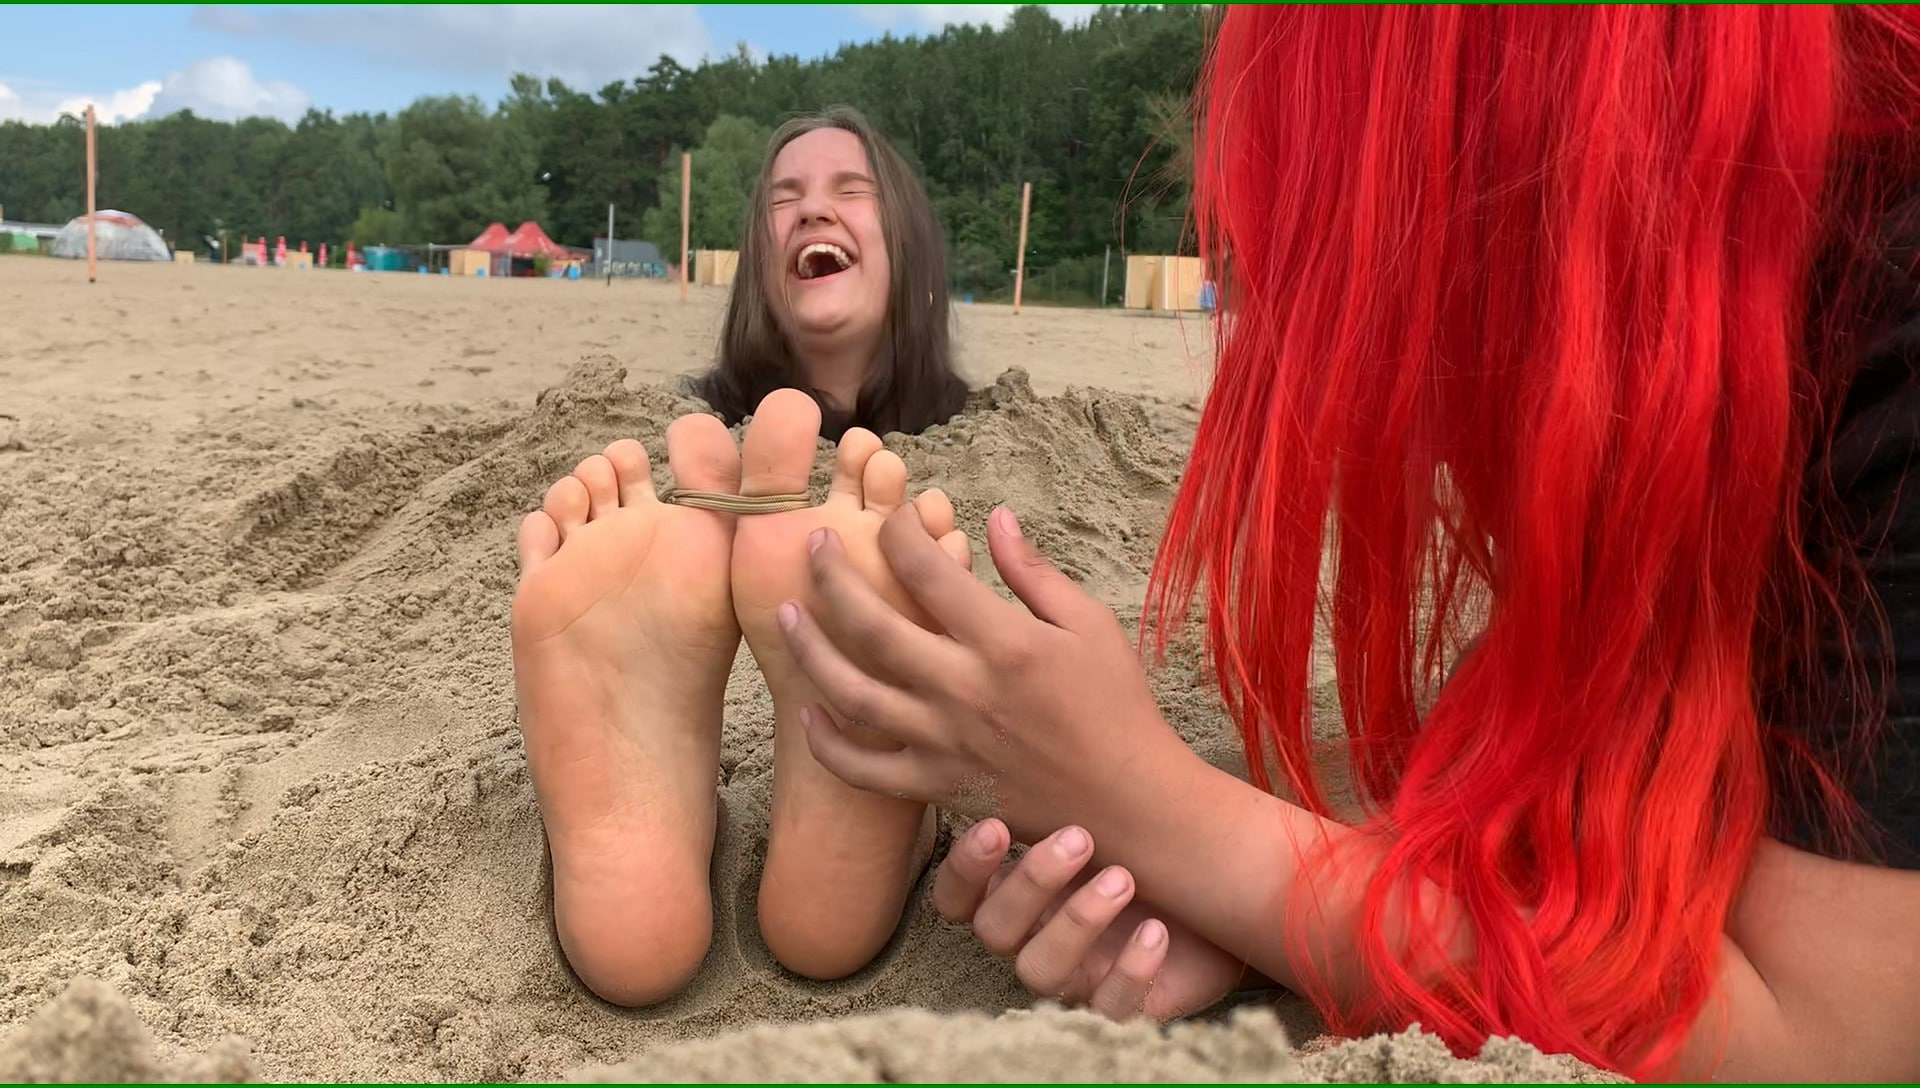 Yana tickles Julie's feet! Buried in the sand at the public beach!